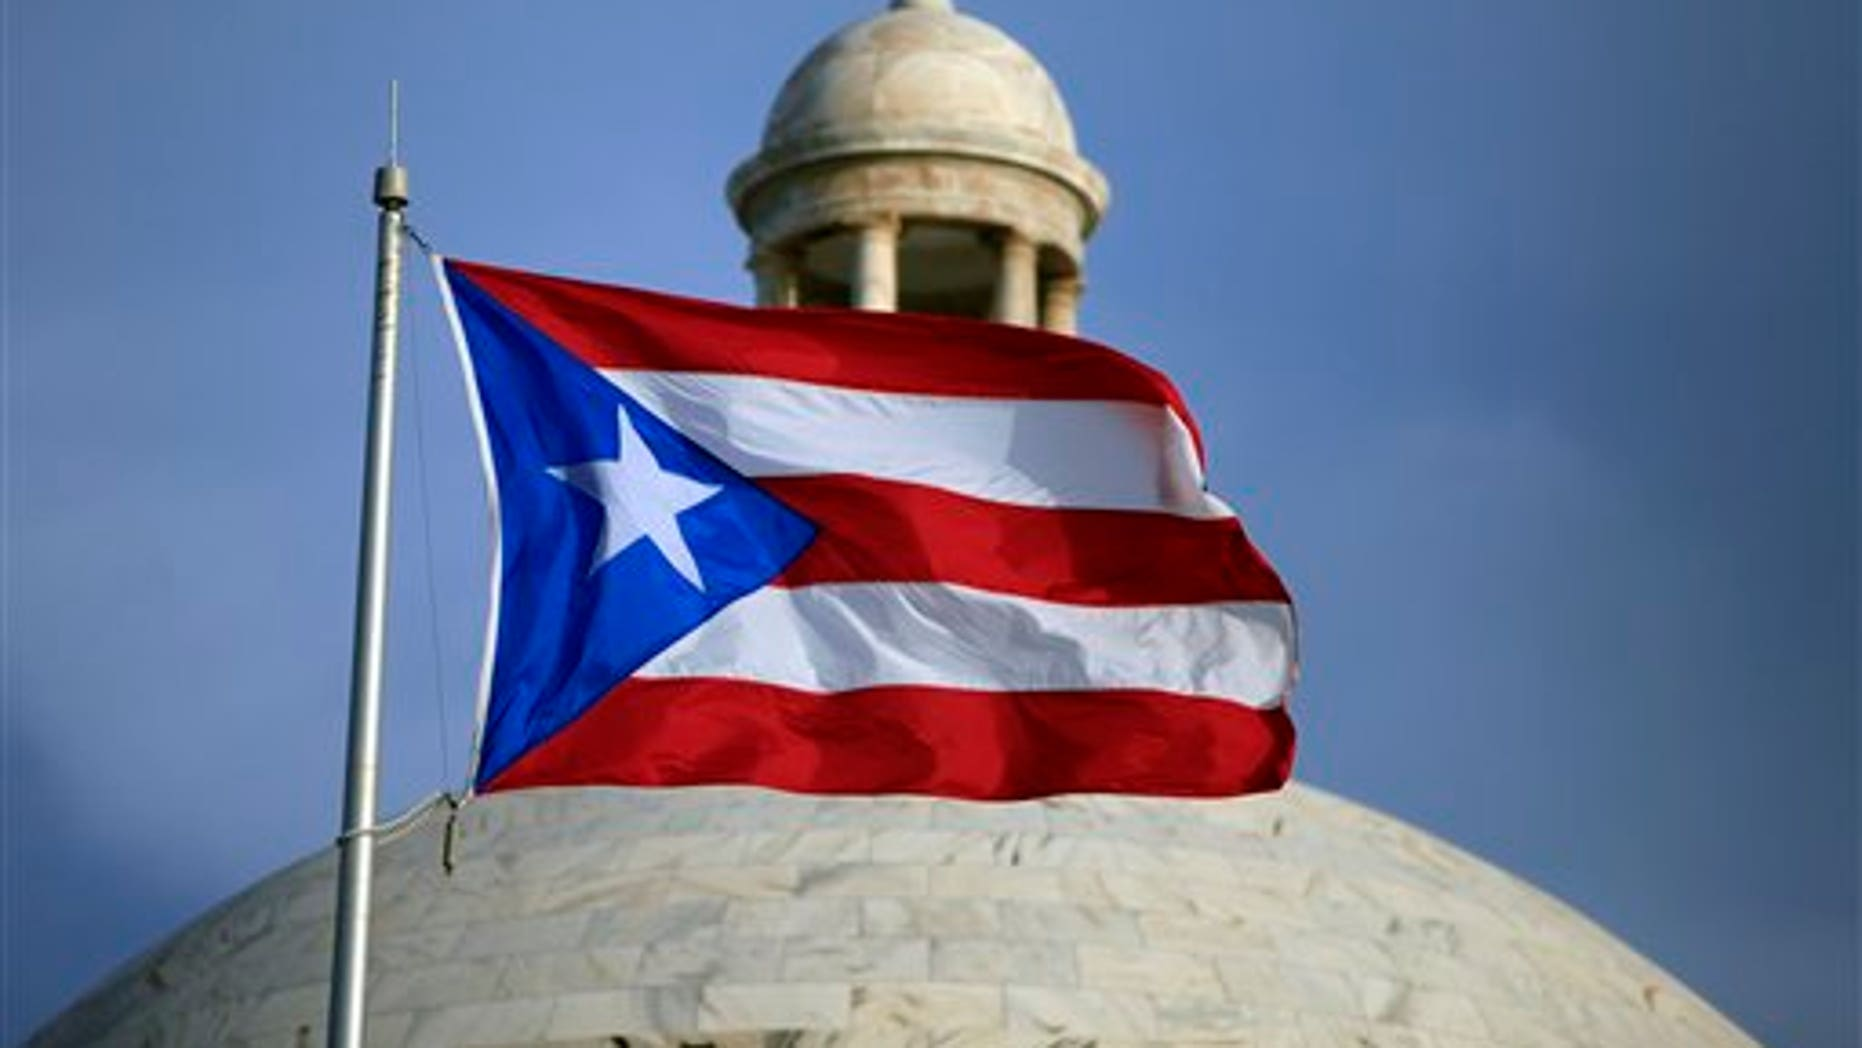 FILE - In this Wednesday, July 29, file 2015 photo, the Puerto Rican flag flies in front of Puerto Ricos Capitol as in San Juan, Puerto Rico. On Monday, April 11, 2016, Puerto Rico released a new proposal to restructure part of its $70 billion debt to buy time to implement a fiscal growth plan as multimillion-dollar payments loom for a U.S. territory facing dwindling cash reserves. (AP Photo/Ricardo Arduengo, File)